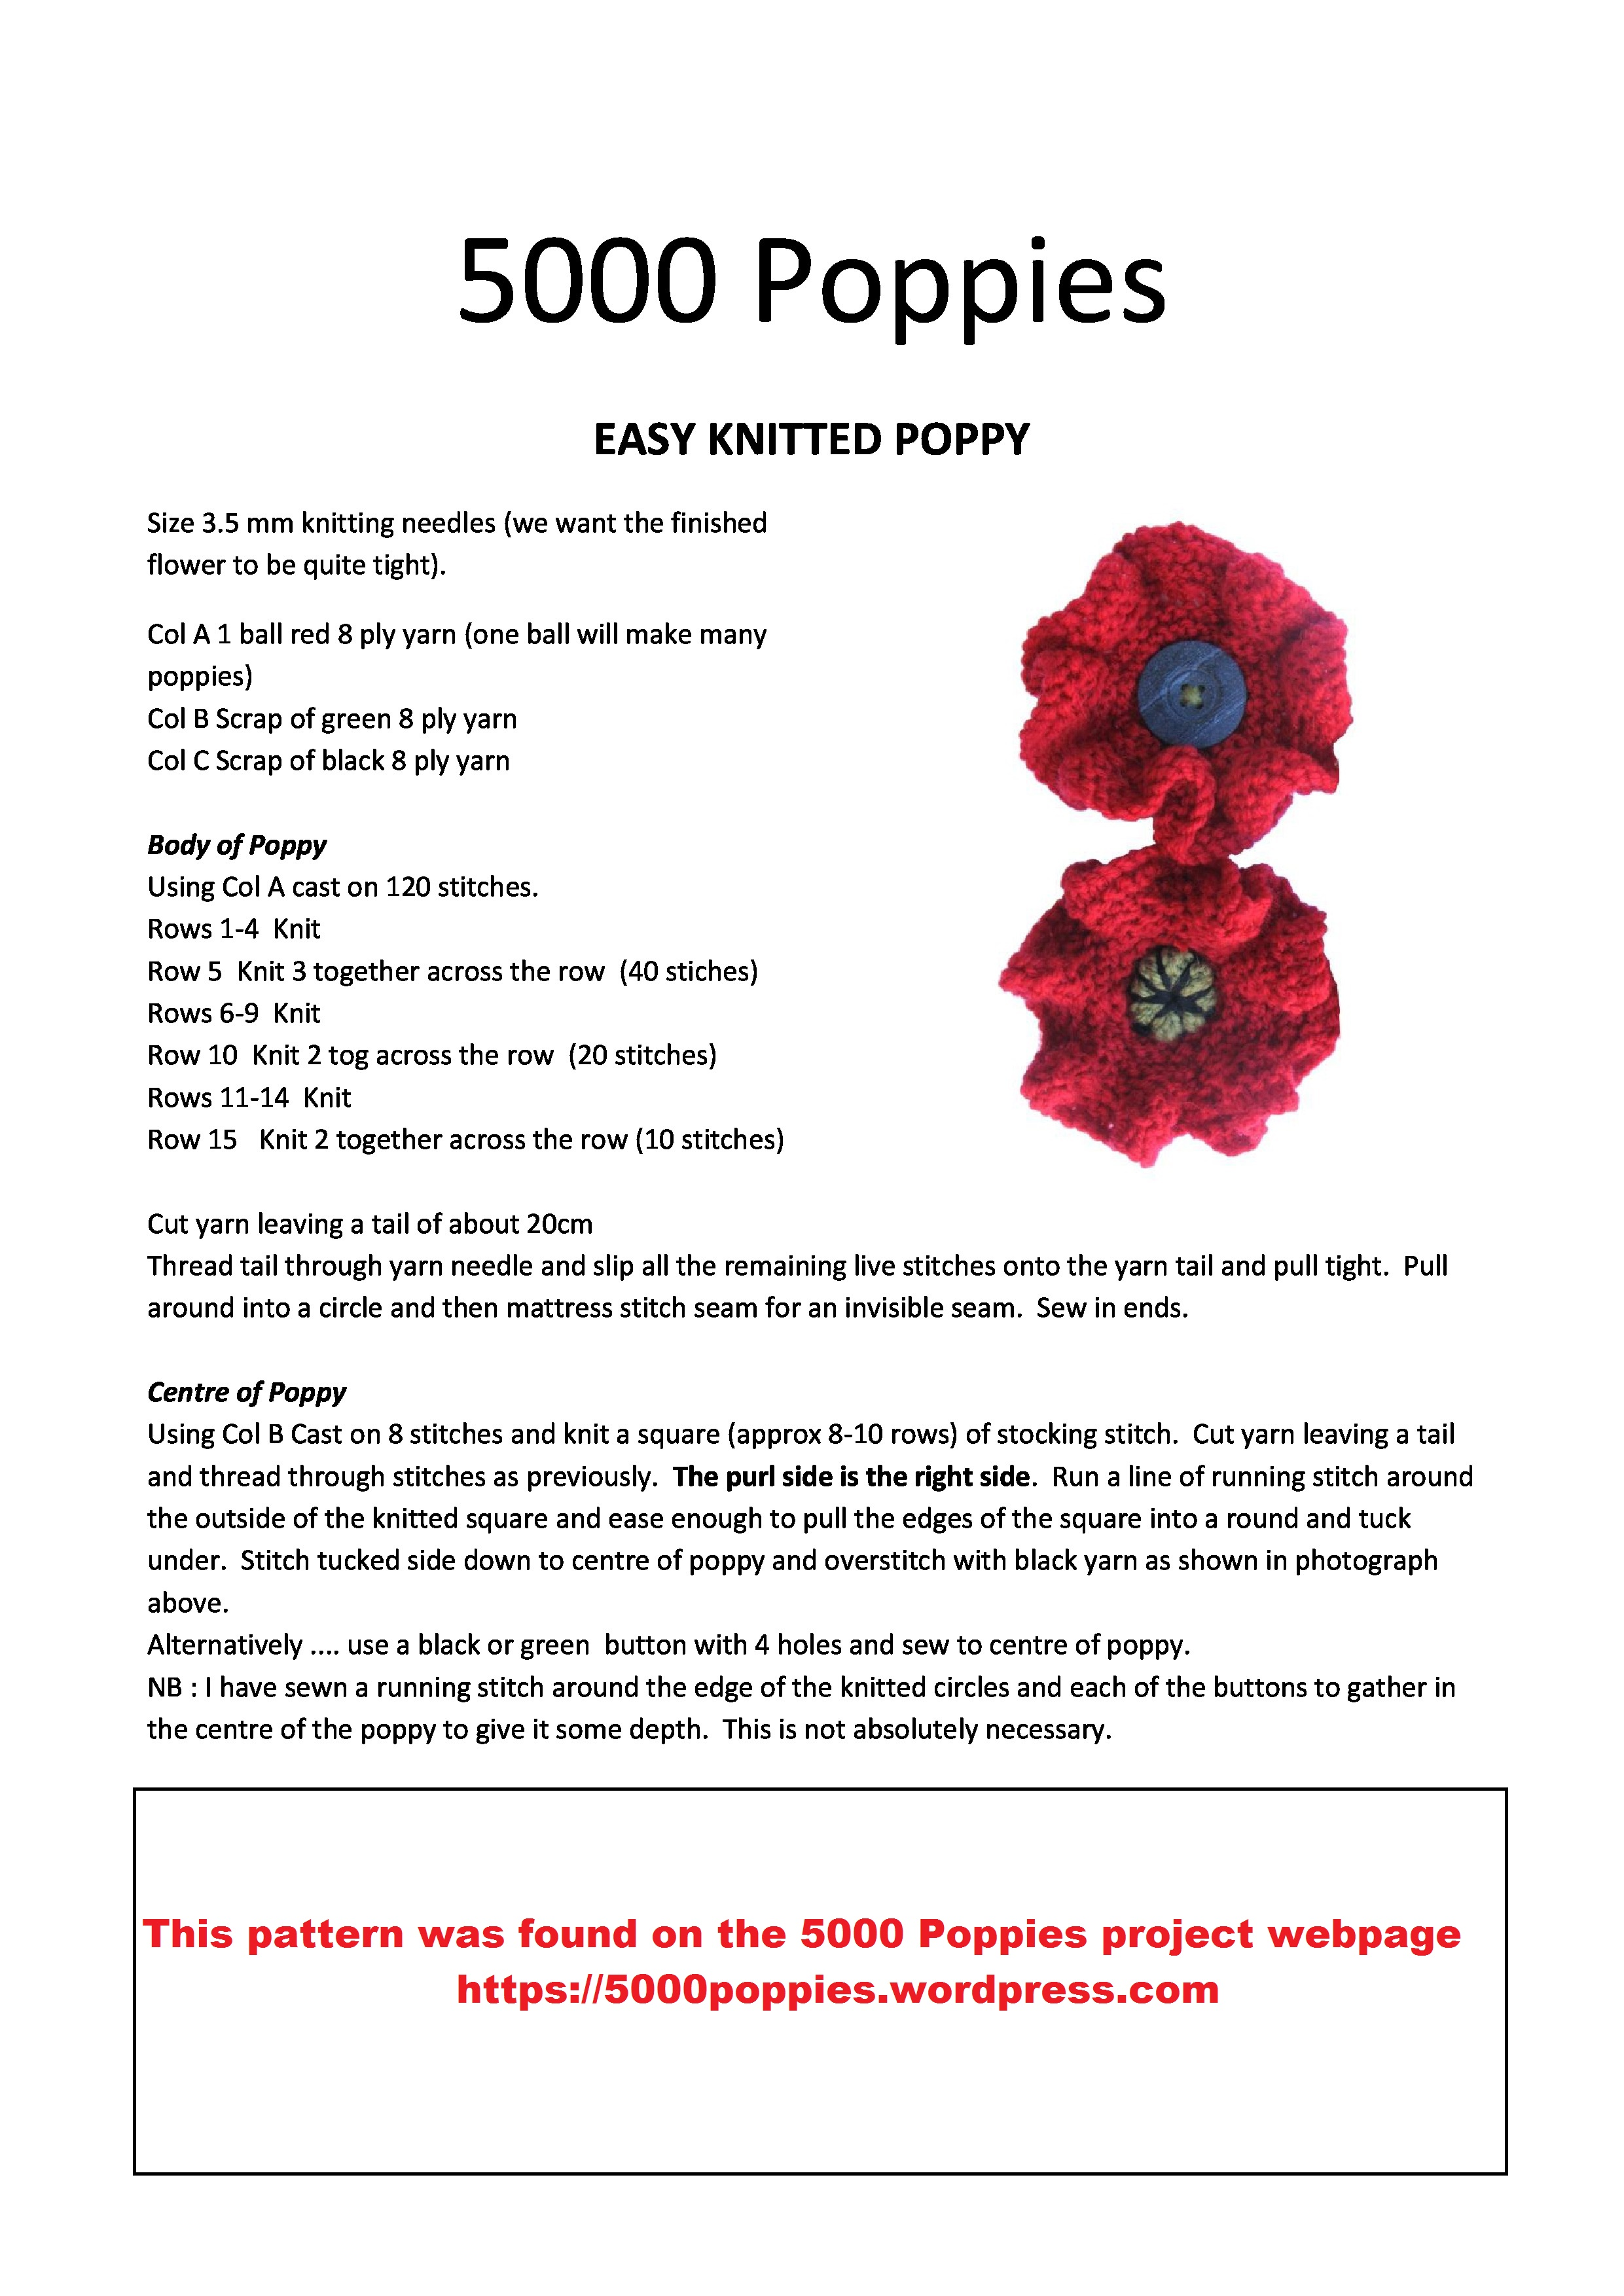 About the 2018 poppy project norfolk in world war one knitted and crocheted poppies knitting patterns pattern 1 mightylinksfo